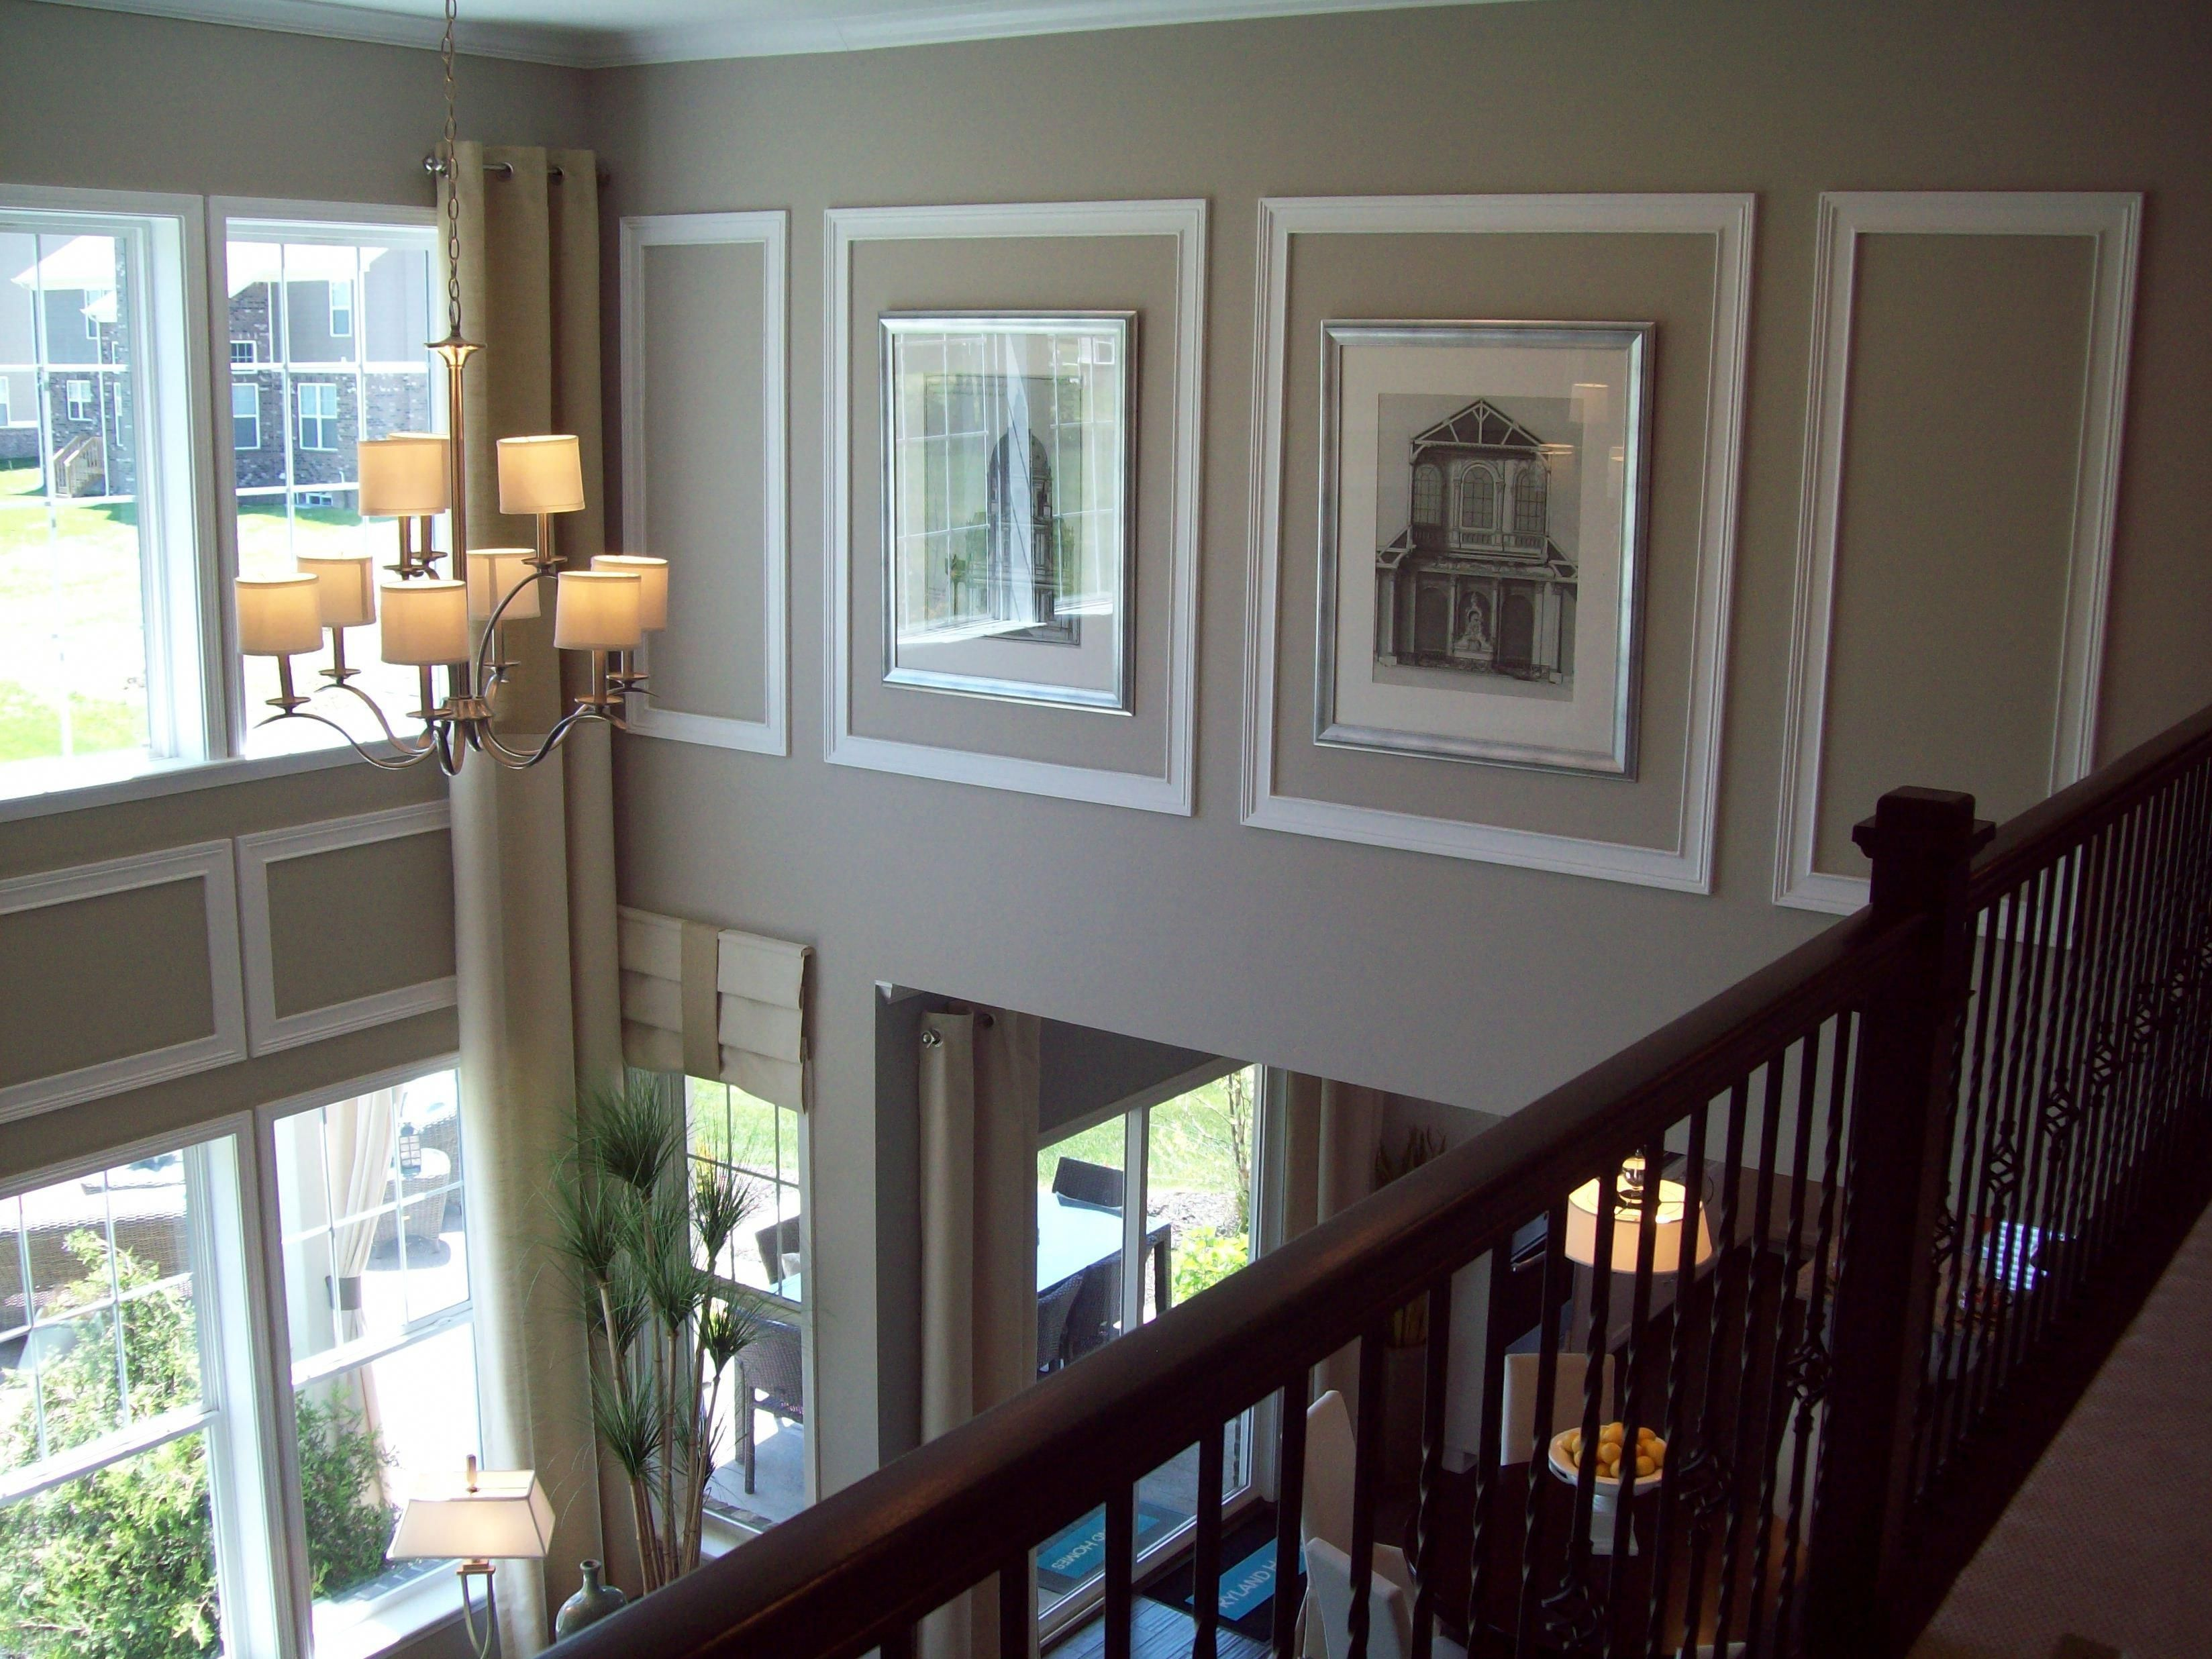 How to decorate a long wall in the living room using wall ... on Decorative Wall Sconces For Living Room Ideas id=93599